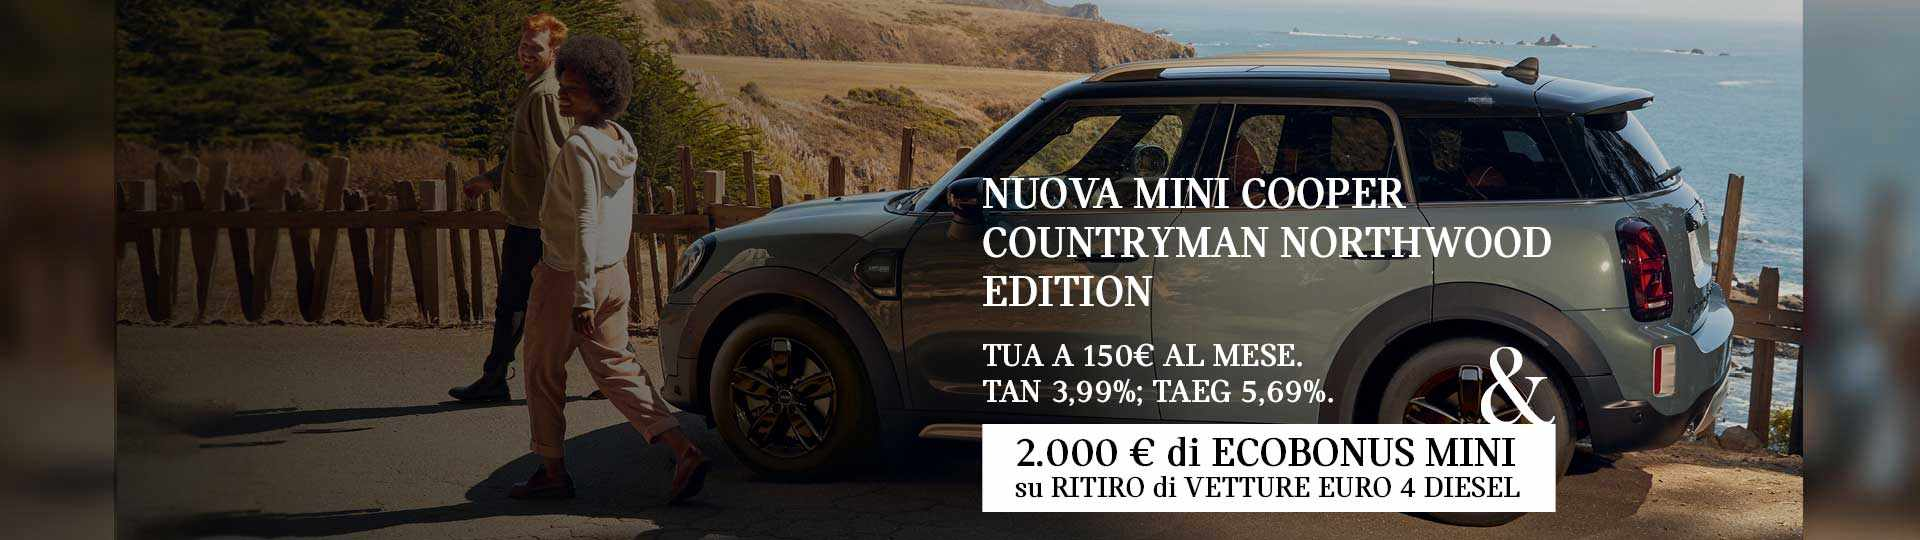 Nuova-MINI-Countryman-min2.jpg